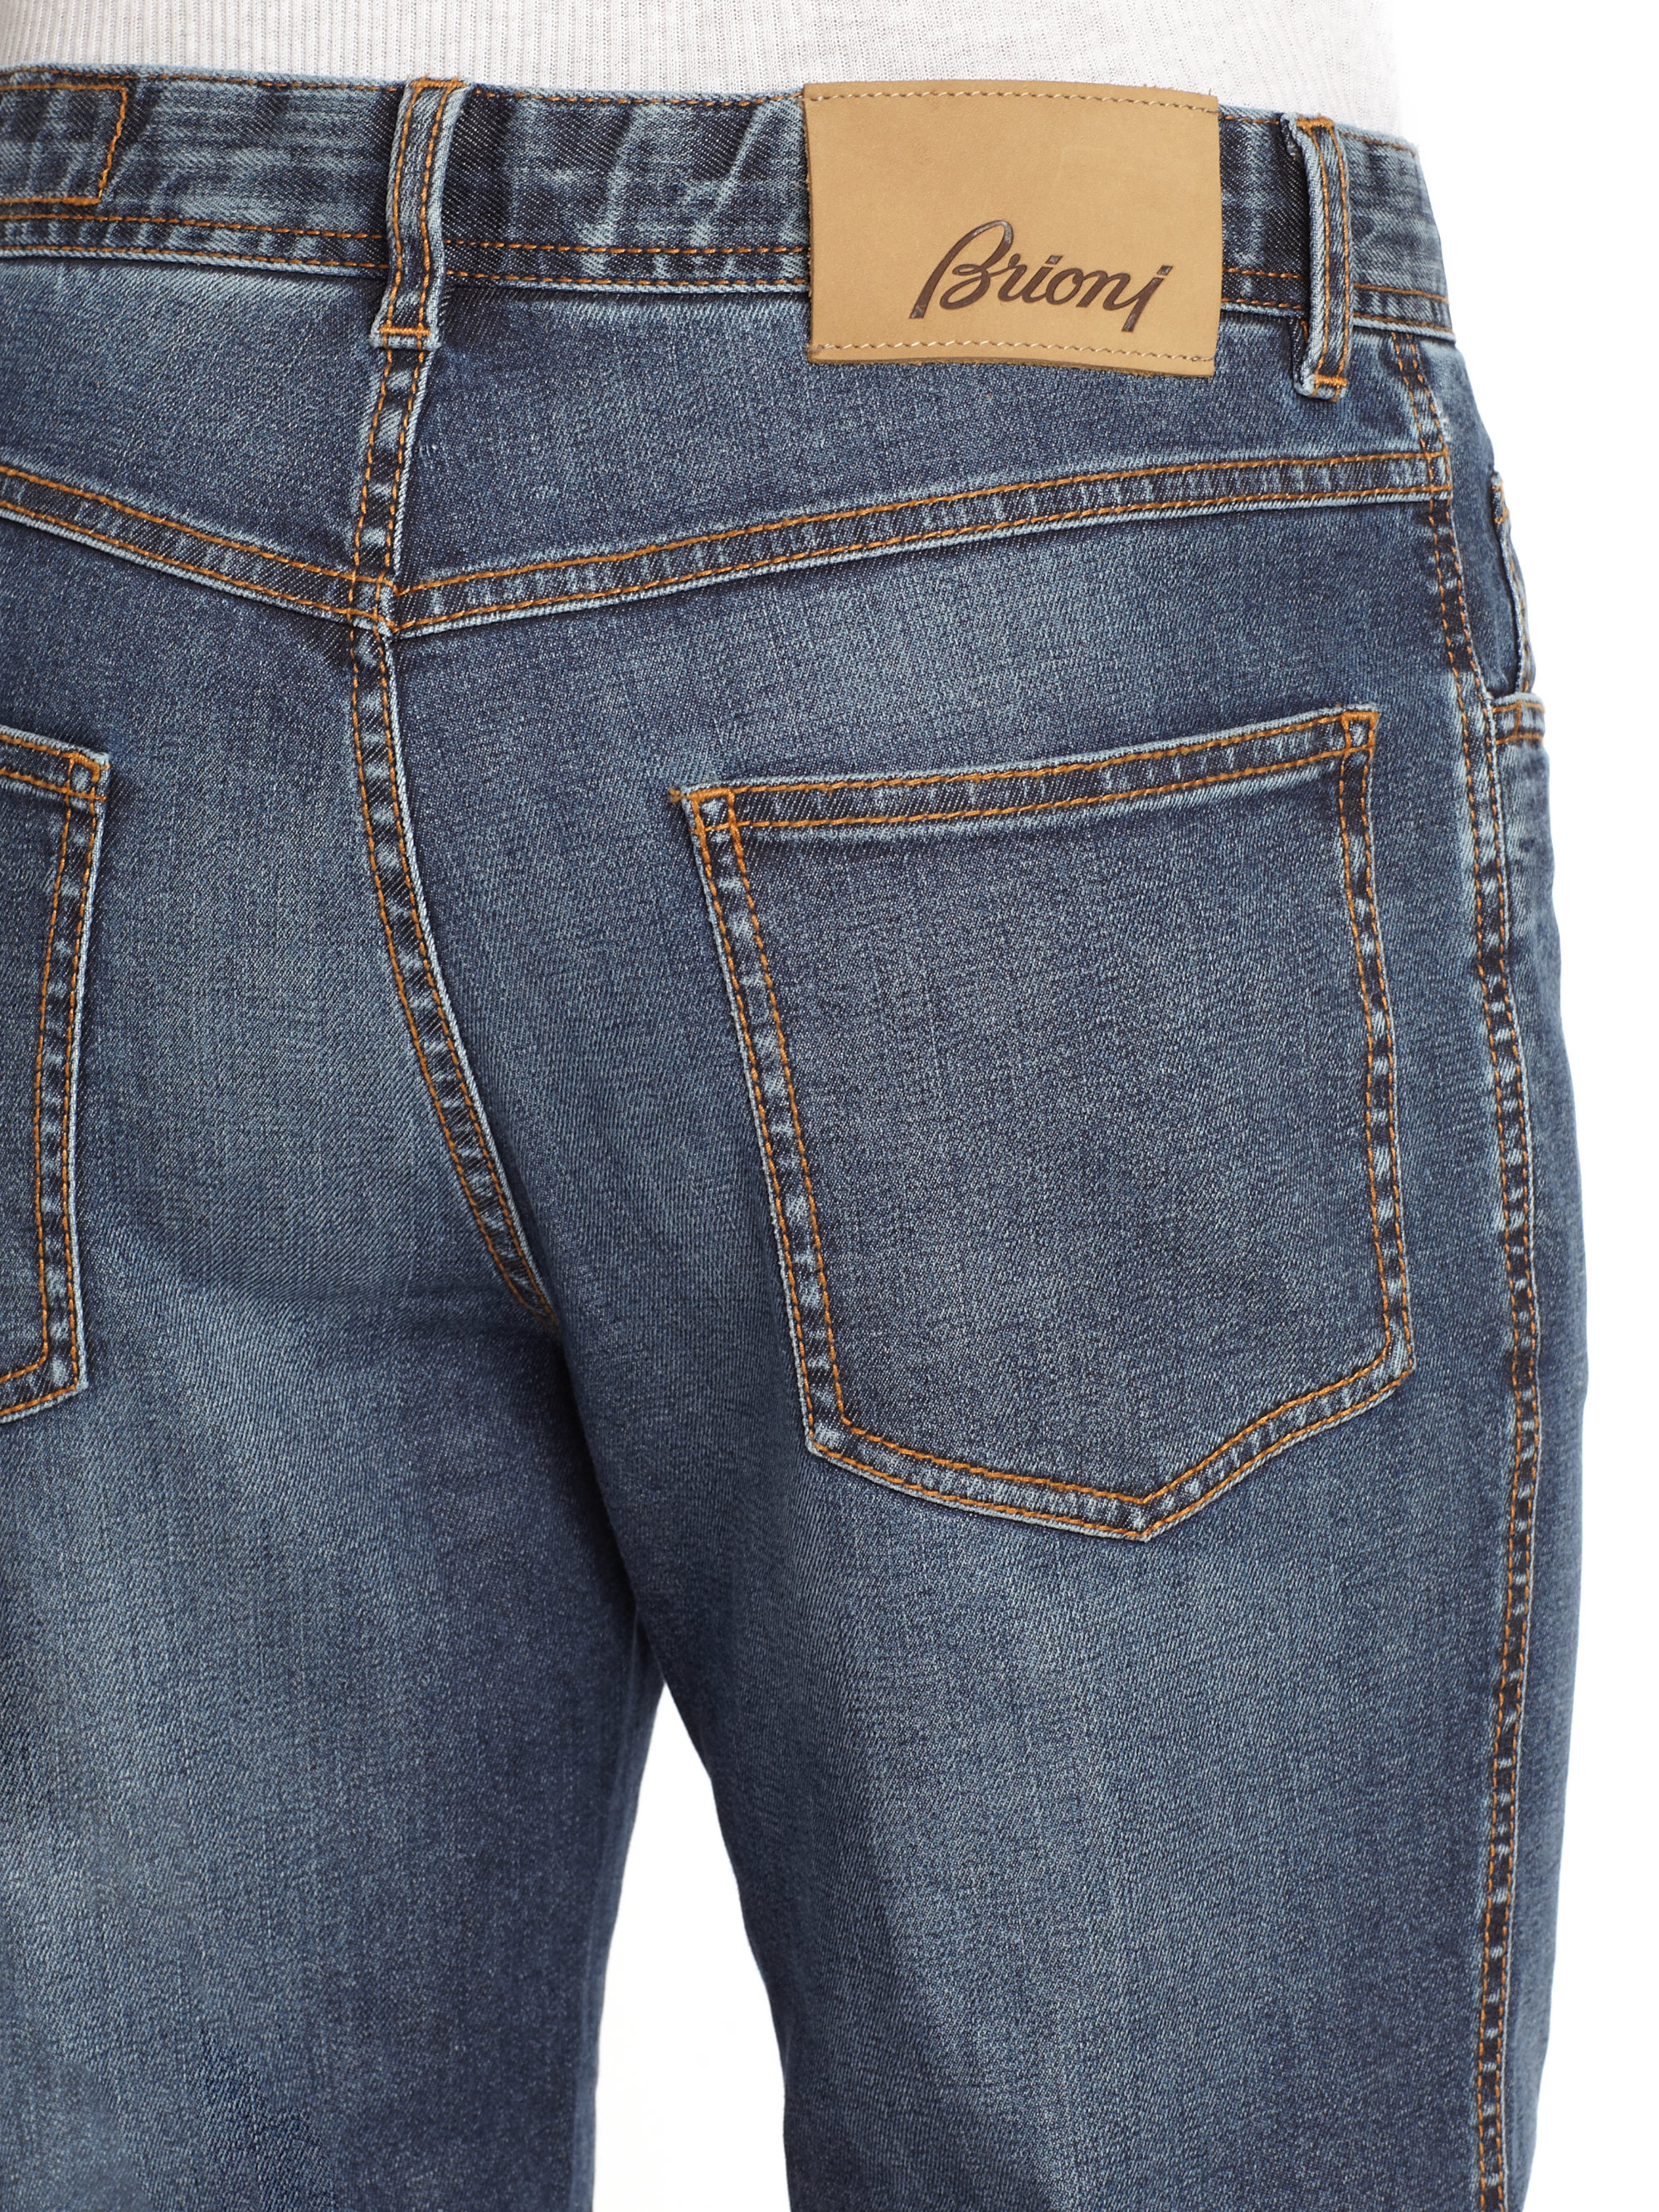 Brioni Avanti Denim Jeans in Blue for Men | Lyst